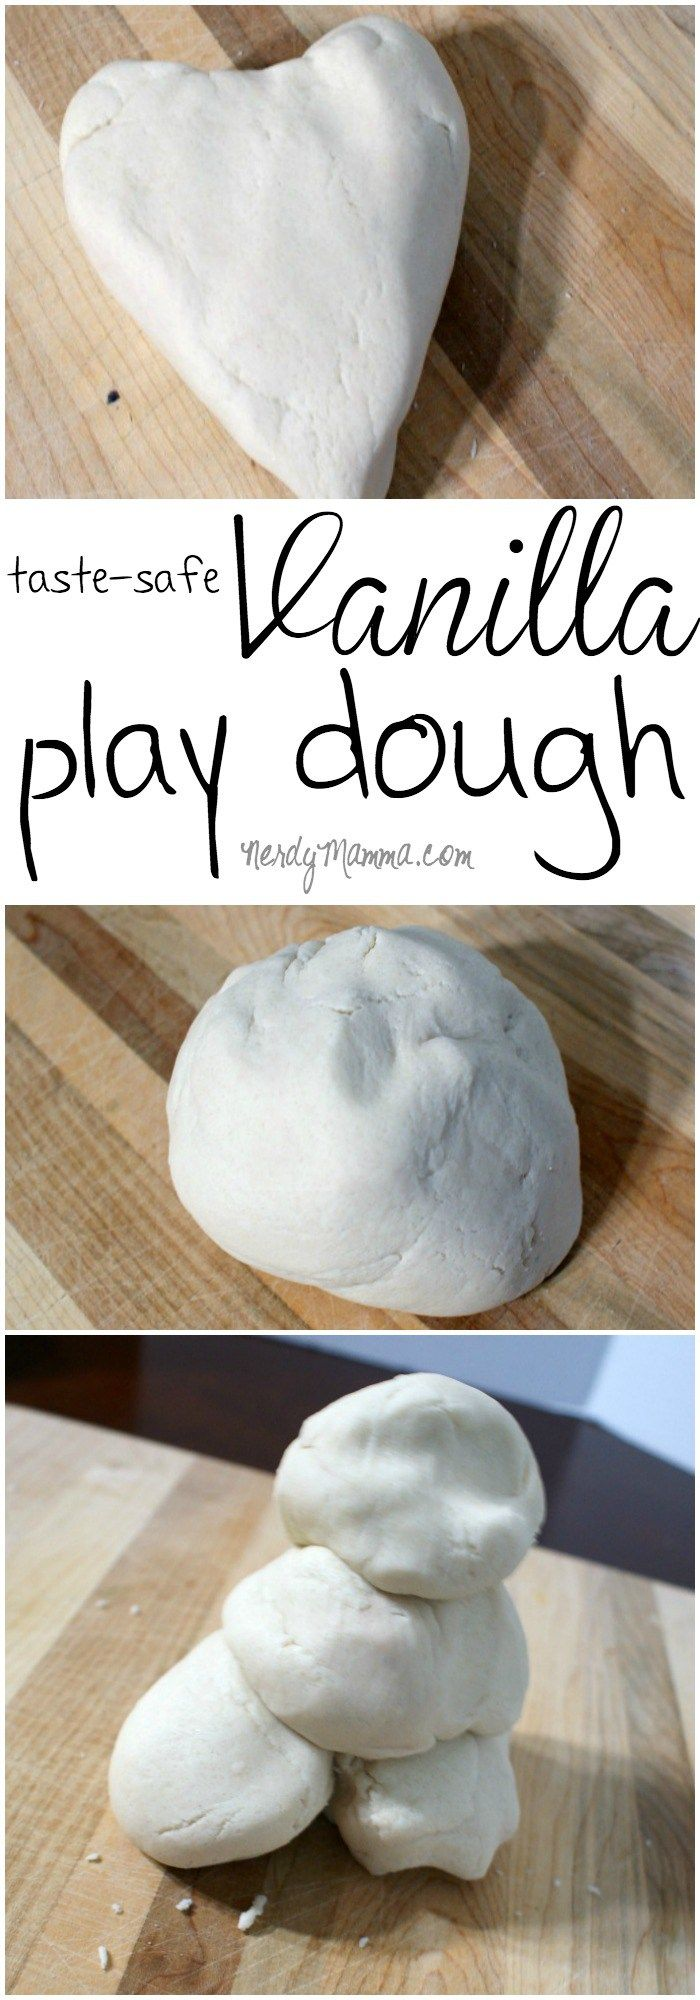 This recipe for taste-safe vanilla play dough is so ridiculously yummy smelling. I think it smells just like a nice cookie dough I want to EAT! LOL!